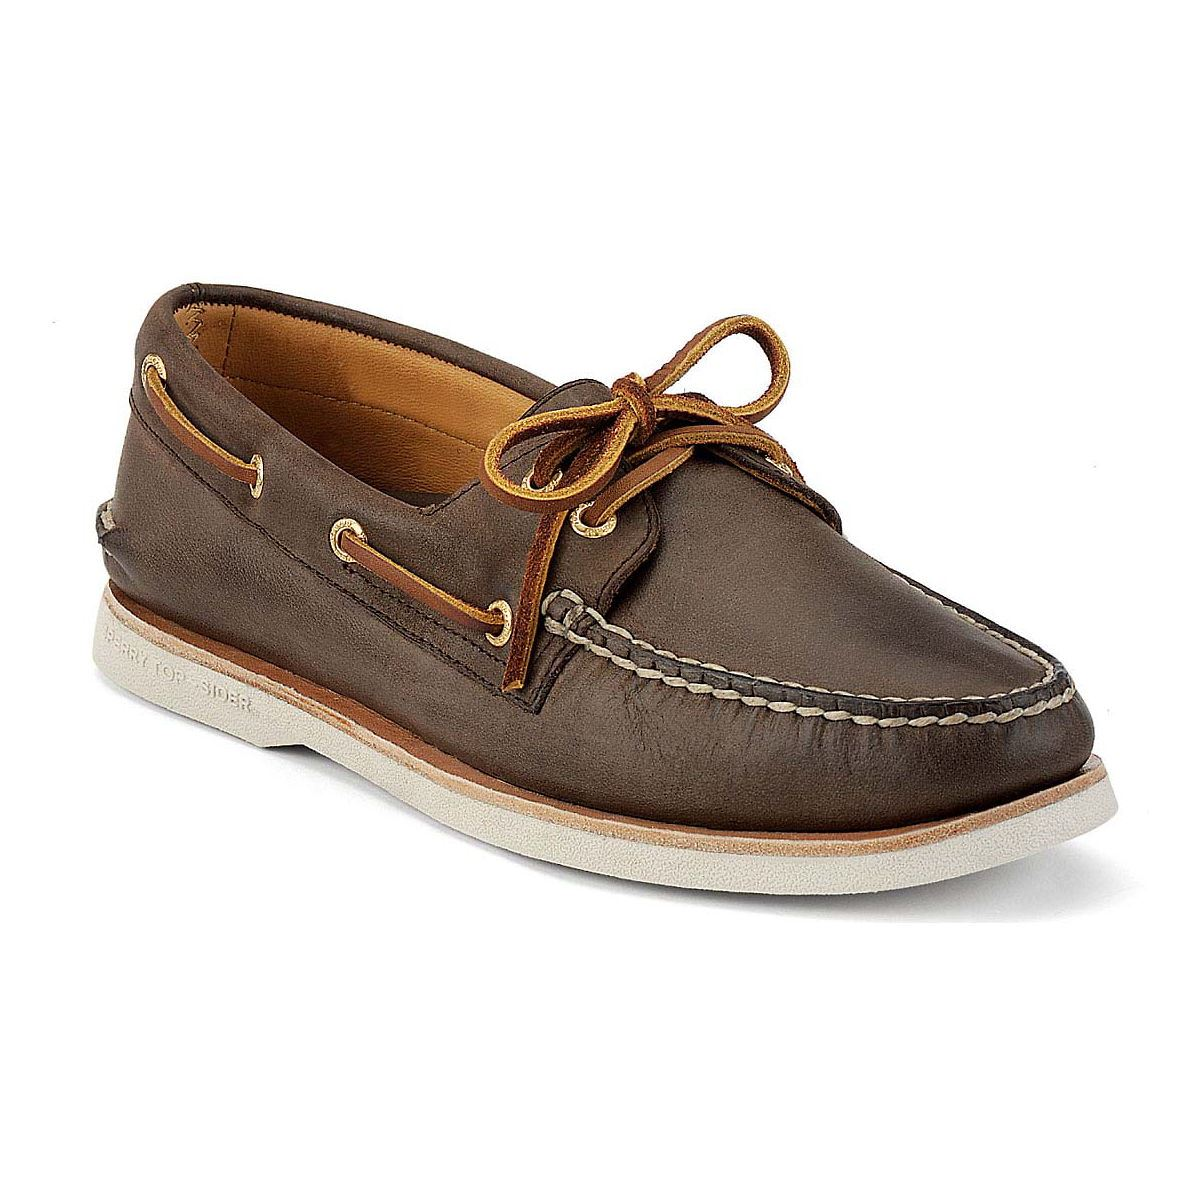 Free shipping and returns on Sperry 'Gold Cup - Authentic Original' Boat Shoe (Men) at adoption-funds.ml The Gold Cup Collection takes the inimitable Sperry style to the next level with hand-burnished leathers, meticulous design and 18K gold-plate details for a touch of shine to seal the deal/5(73).